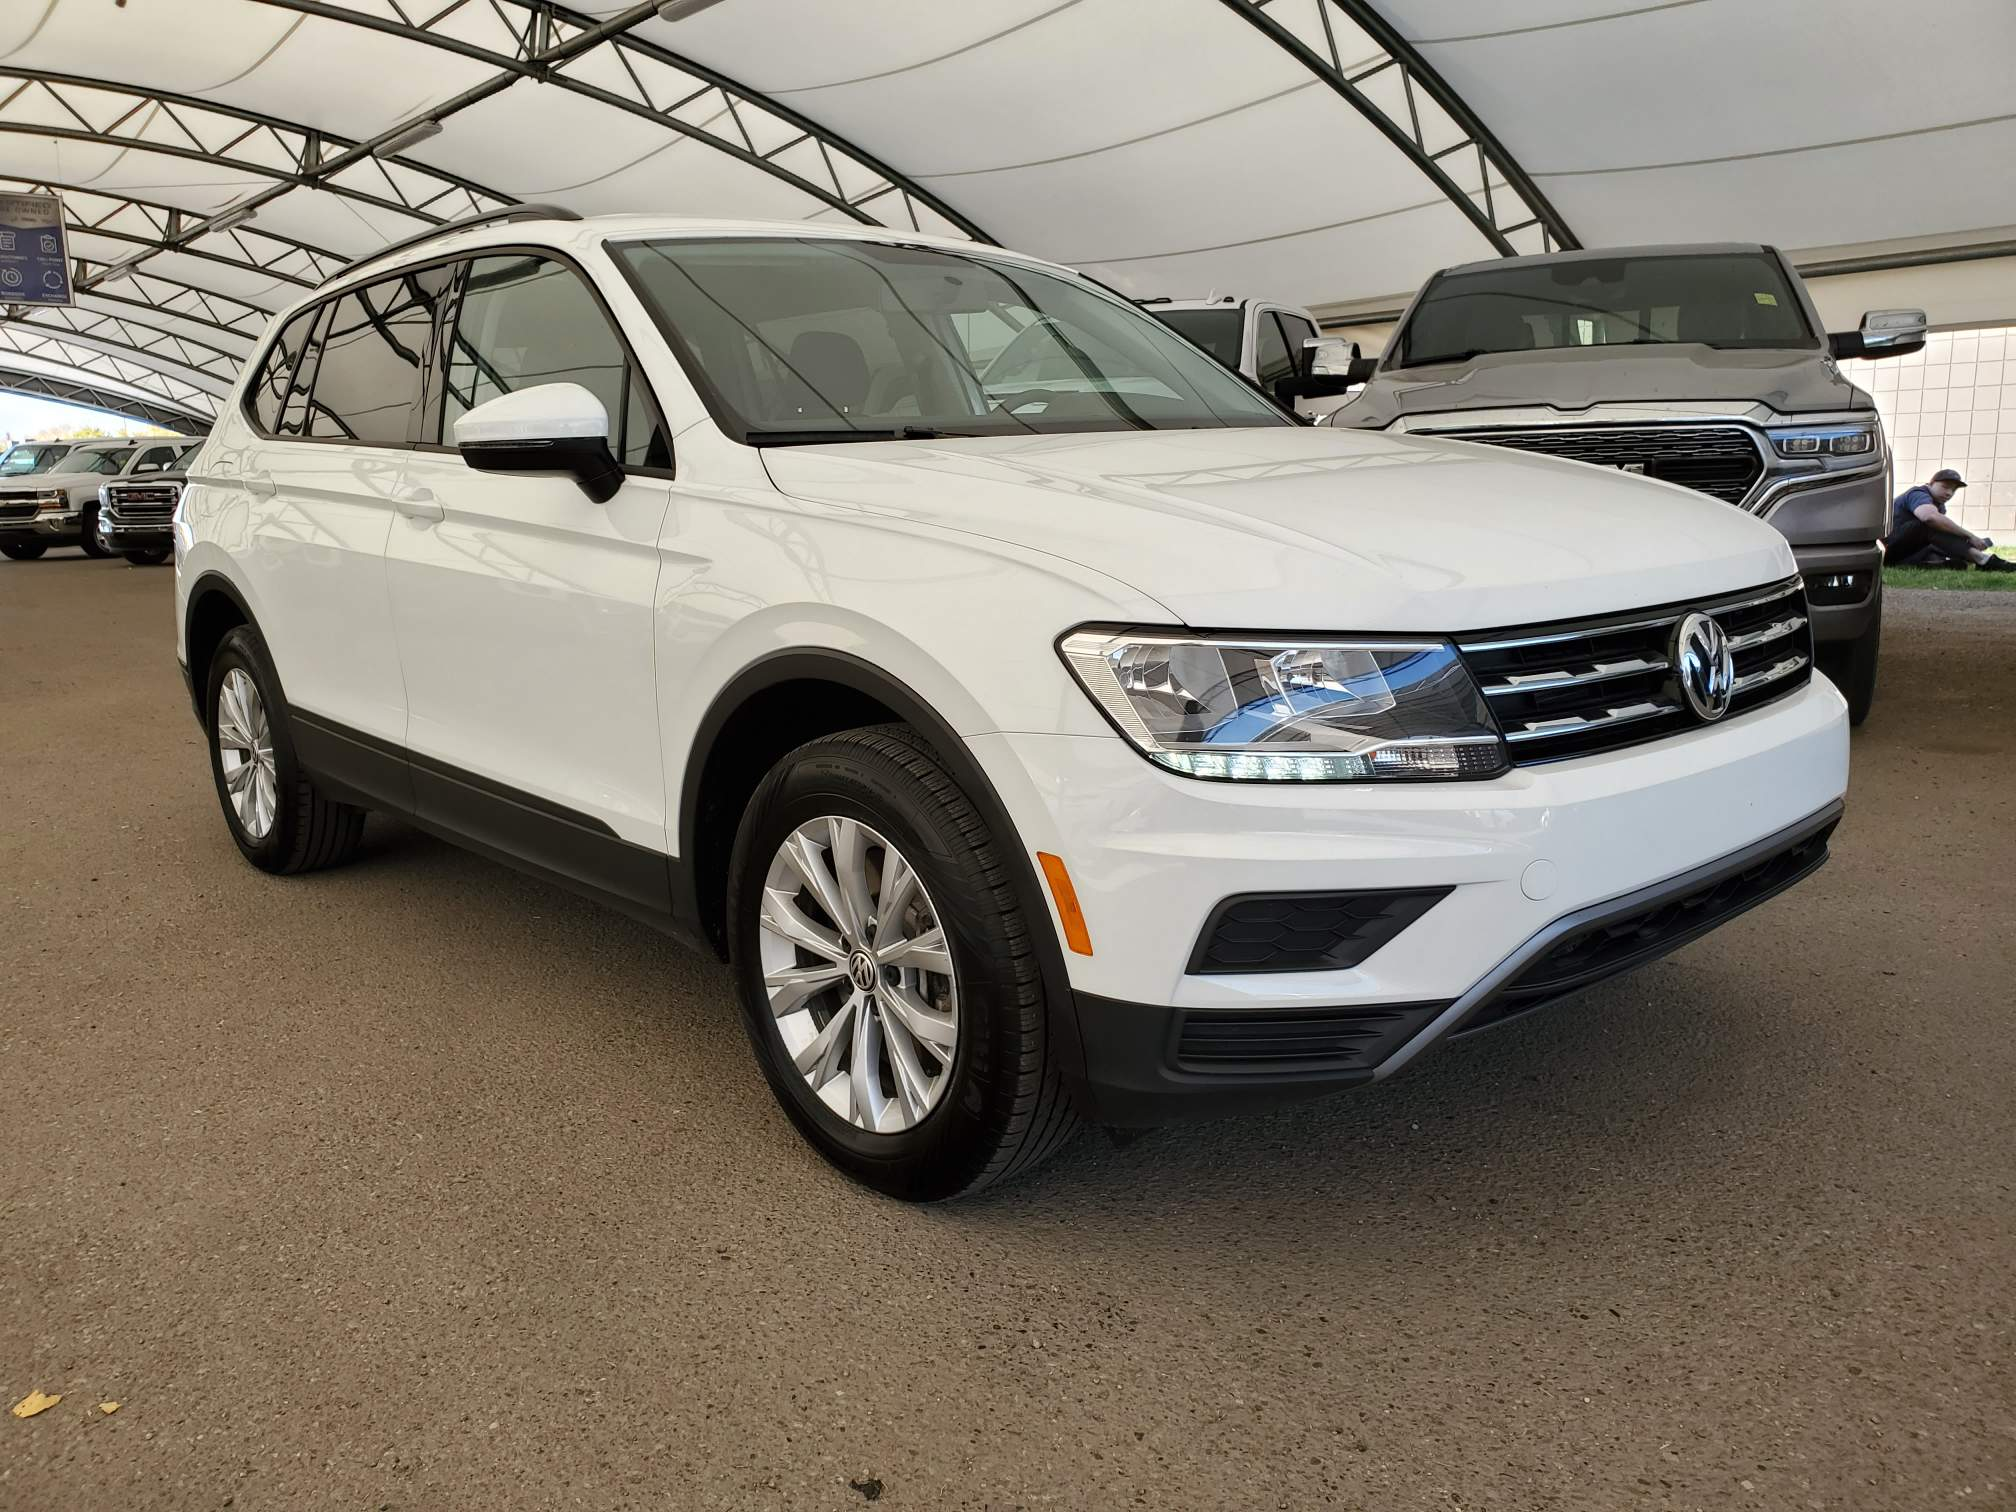 used 2019 Volkswagen Tiguan car, priced at $22,470